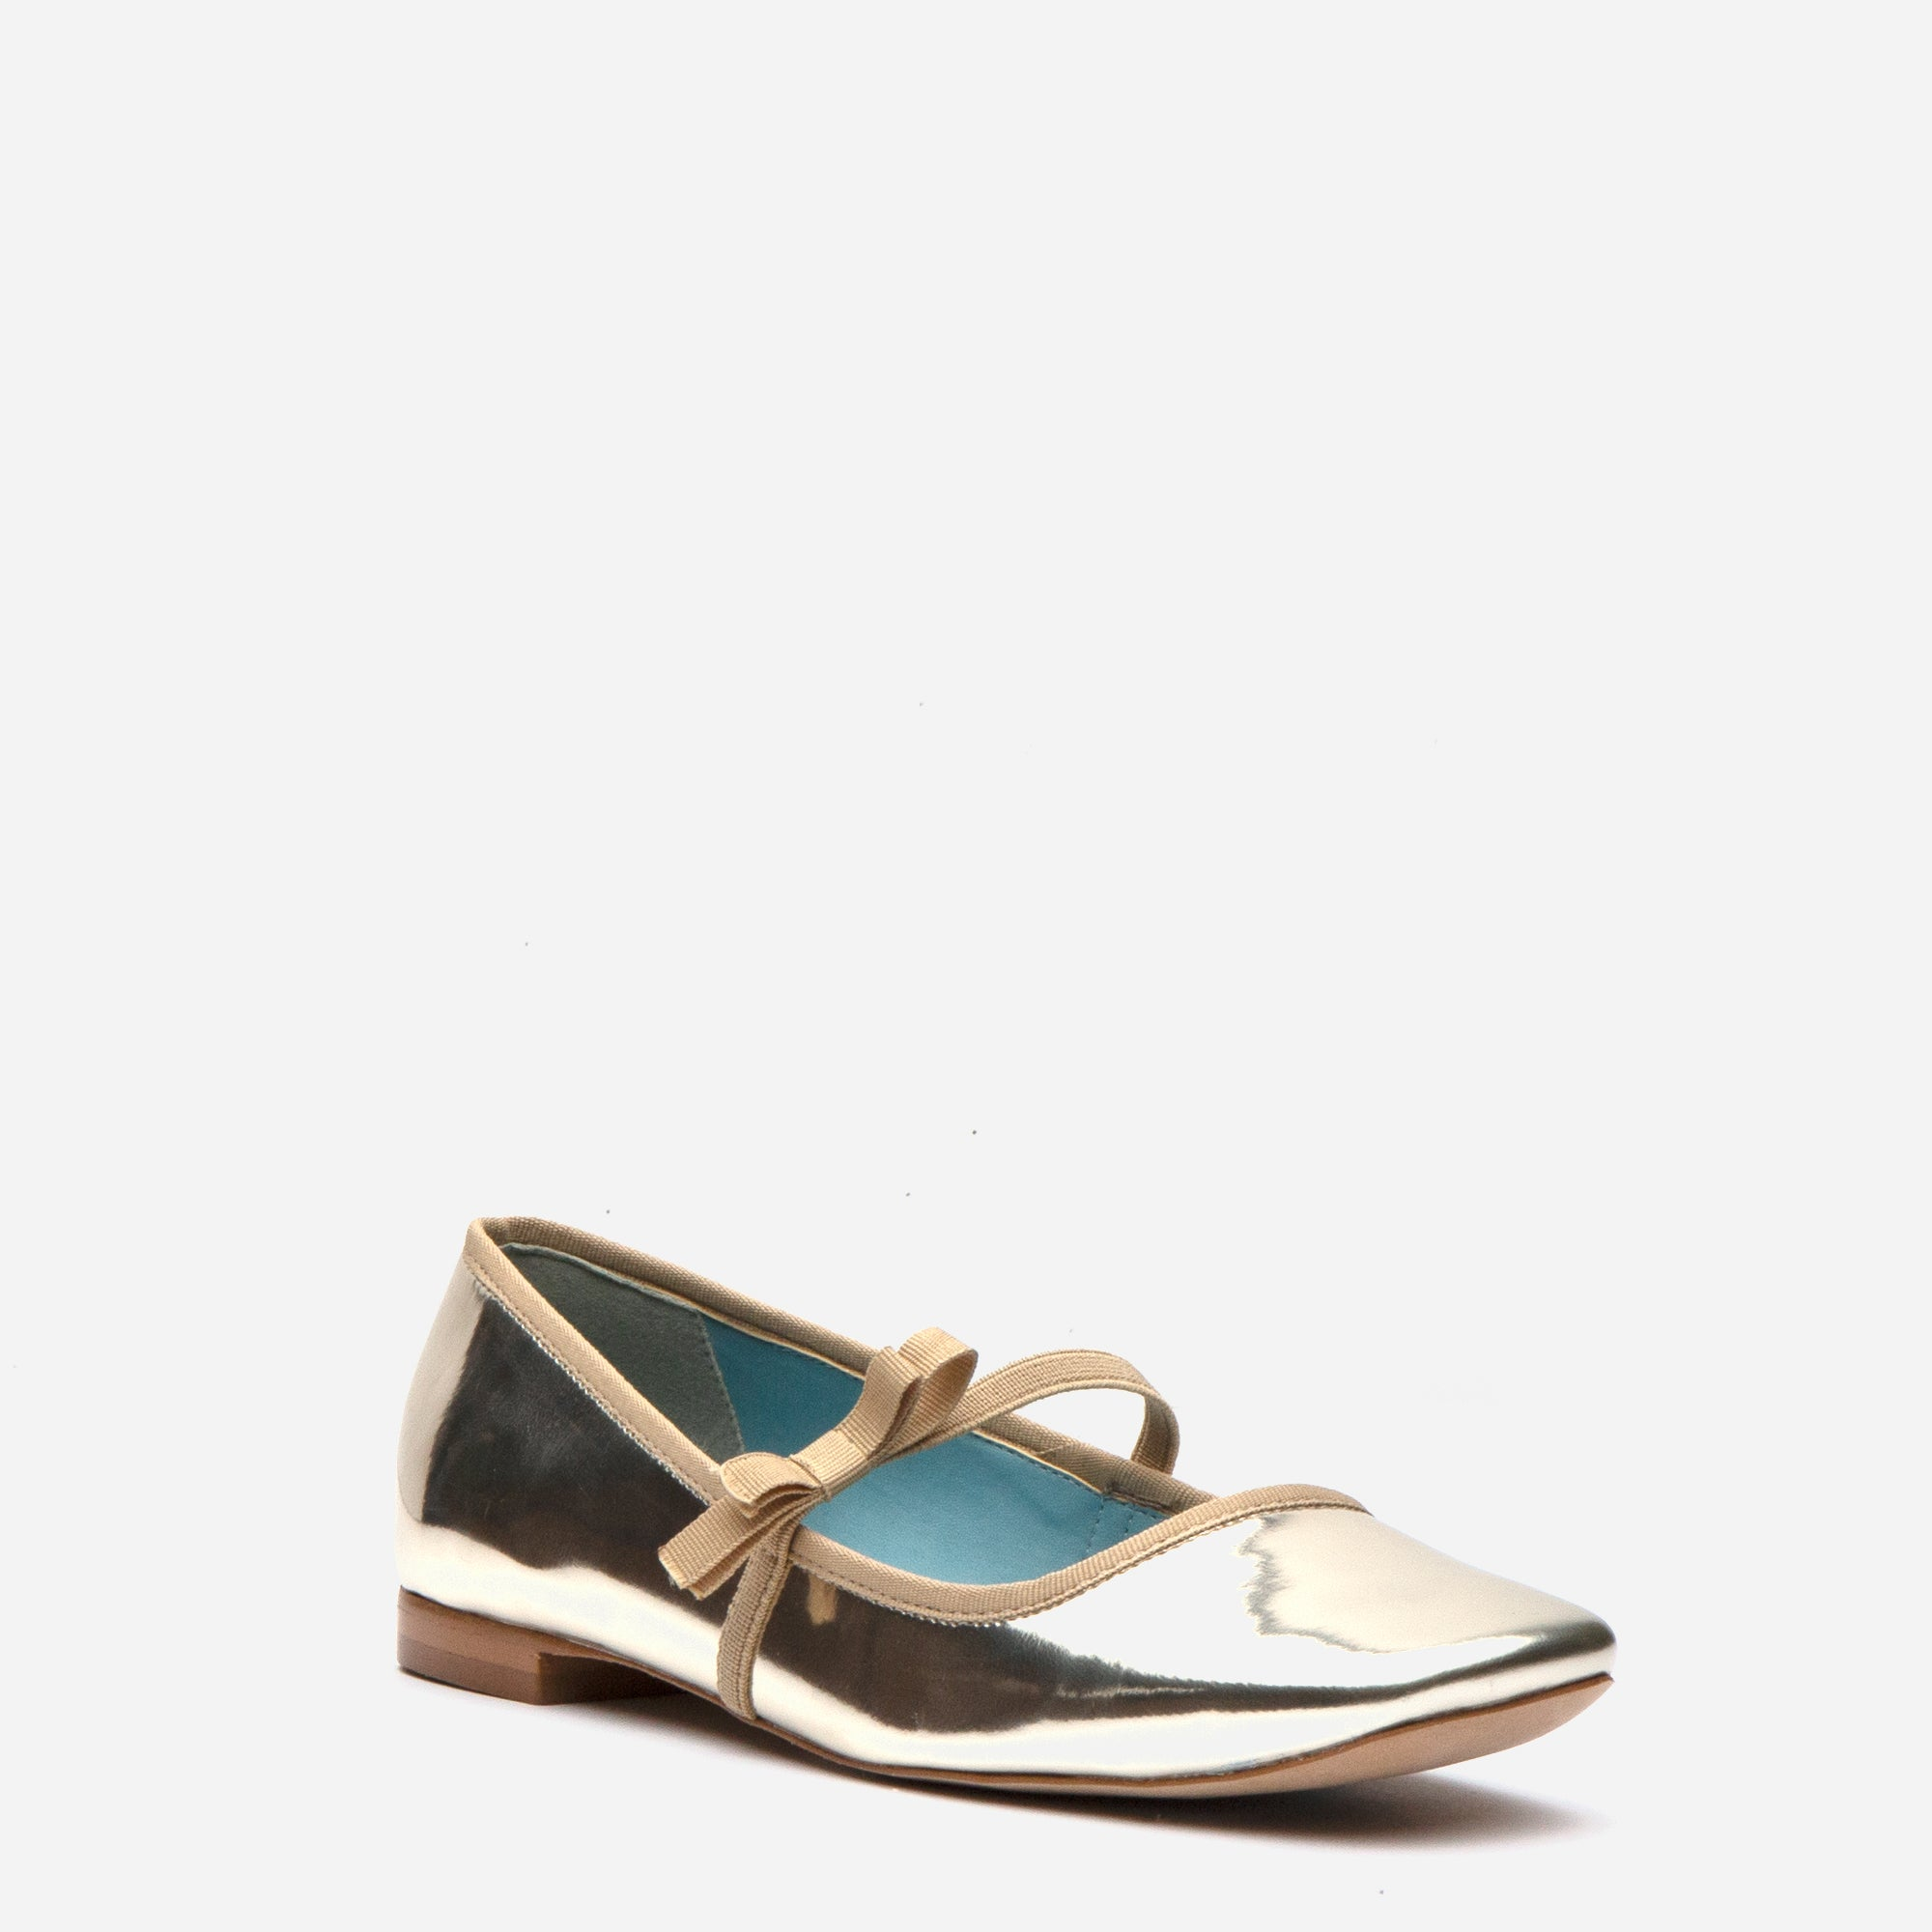 Jude Mary Jane Vegan Leather Flats Platino